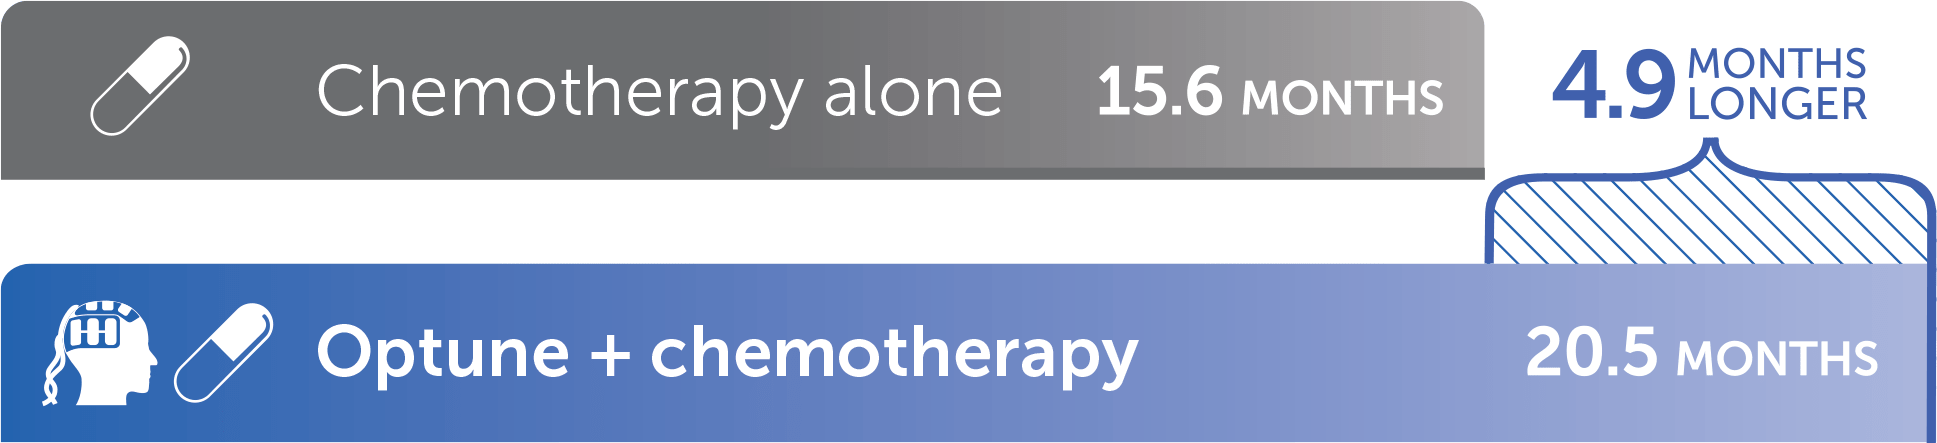 Overall survival of people on Optune® + chemotherapy was 4.9 months longer than that of people on chemotherapy alone